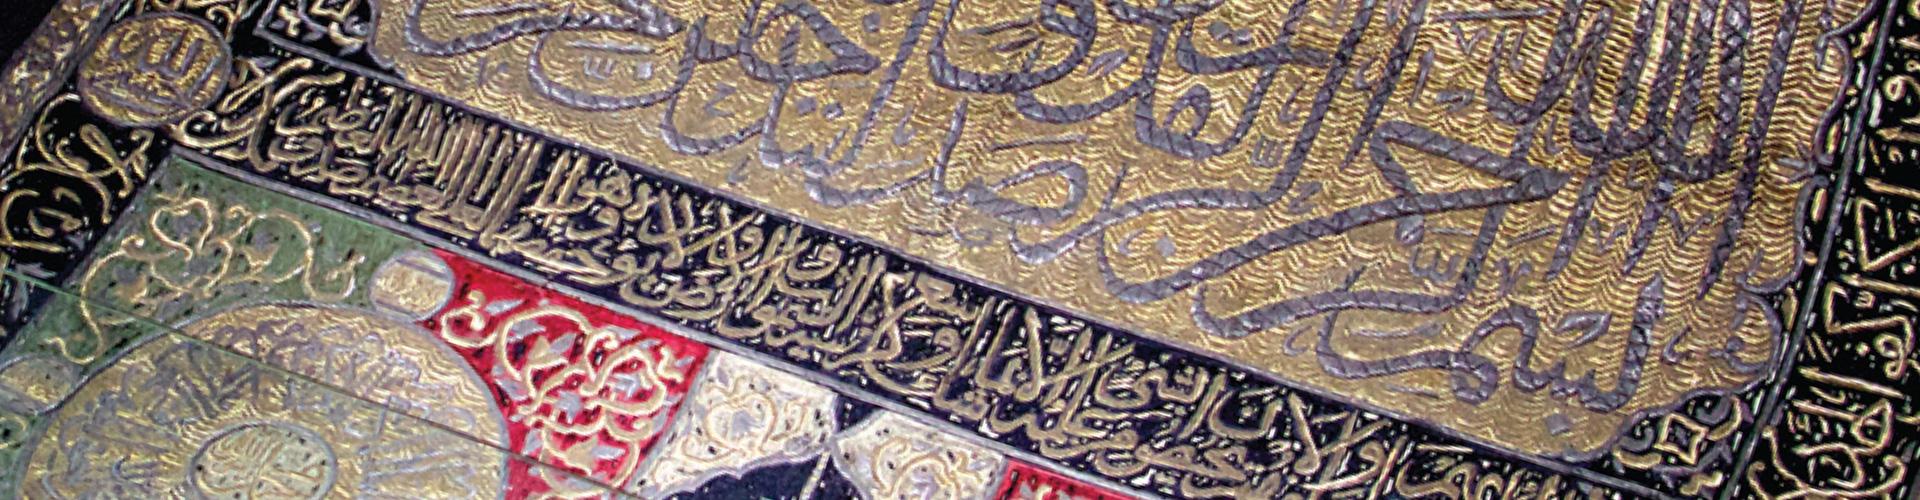 SITARAH (CURTAIN) OF THE DOOR OF THE KAABA